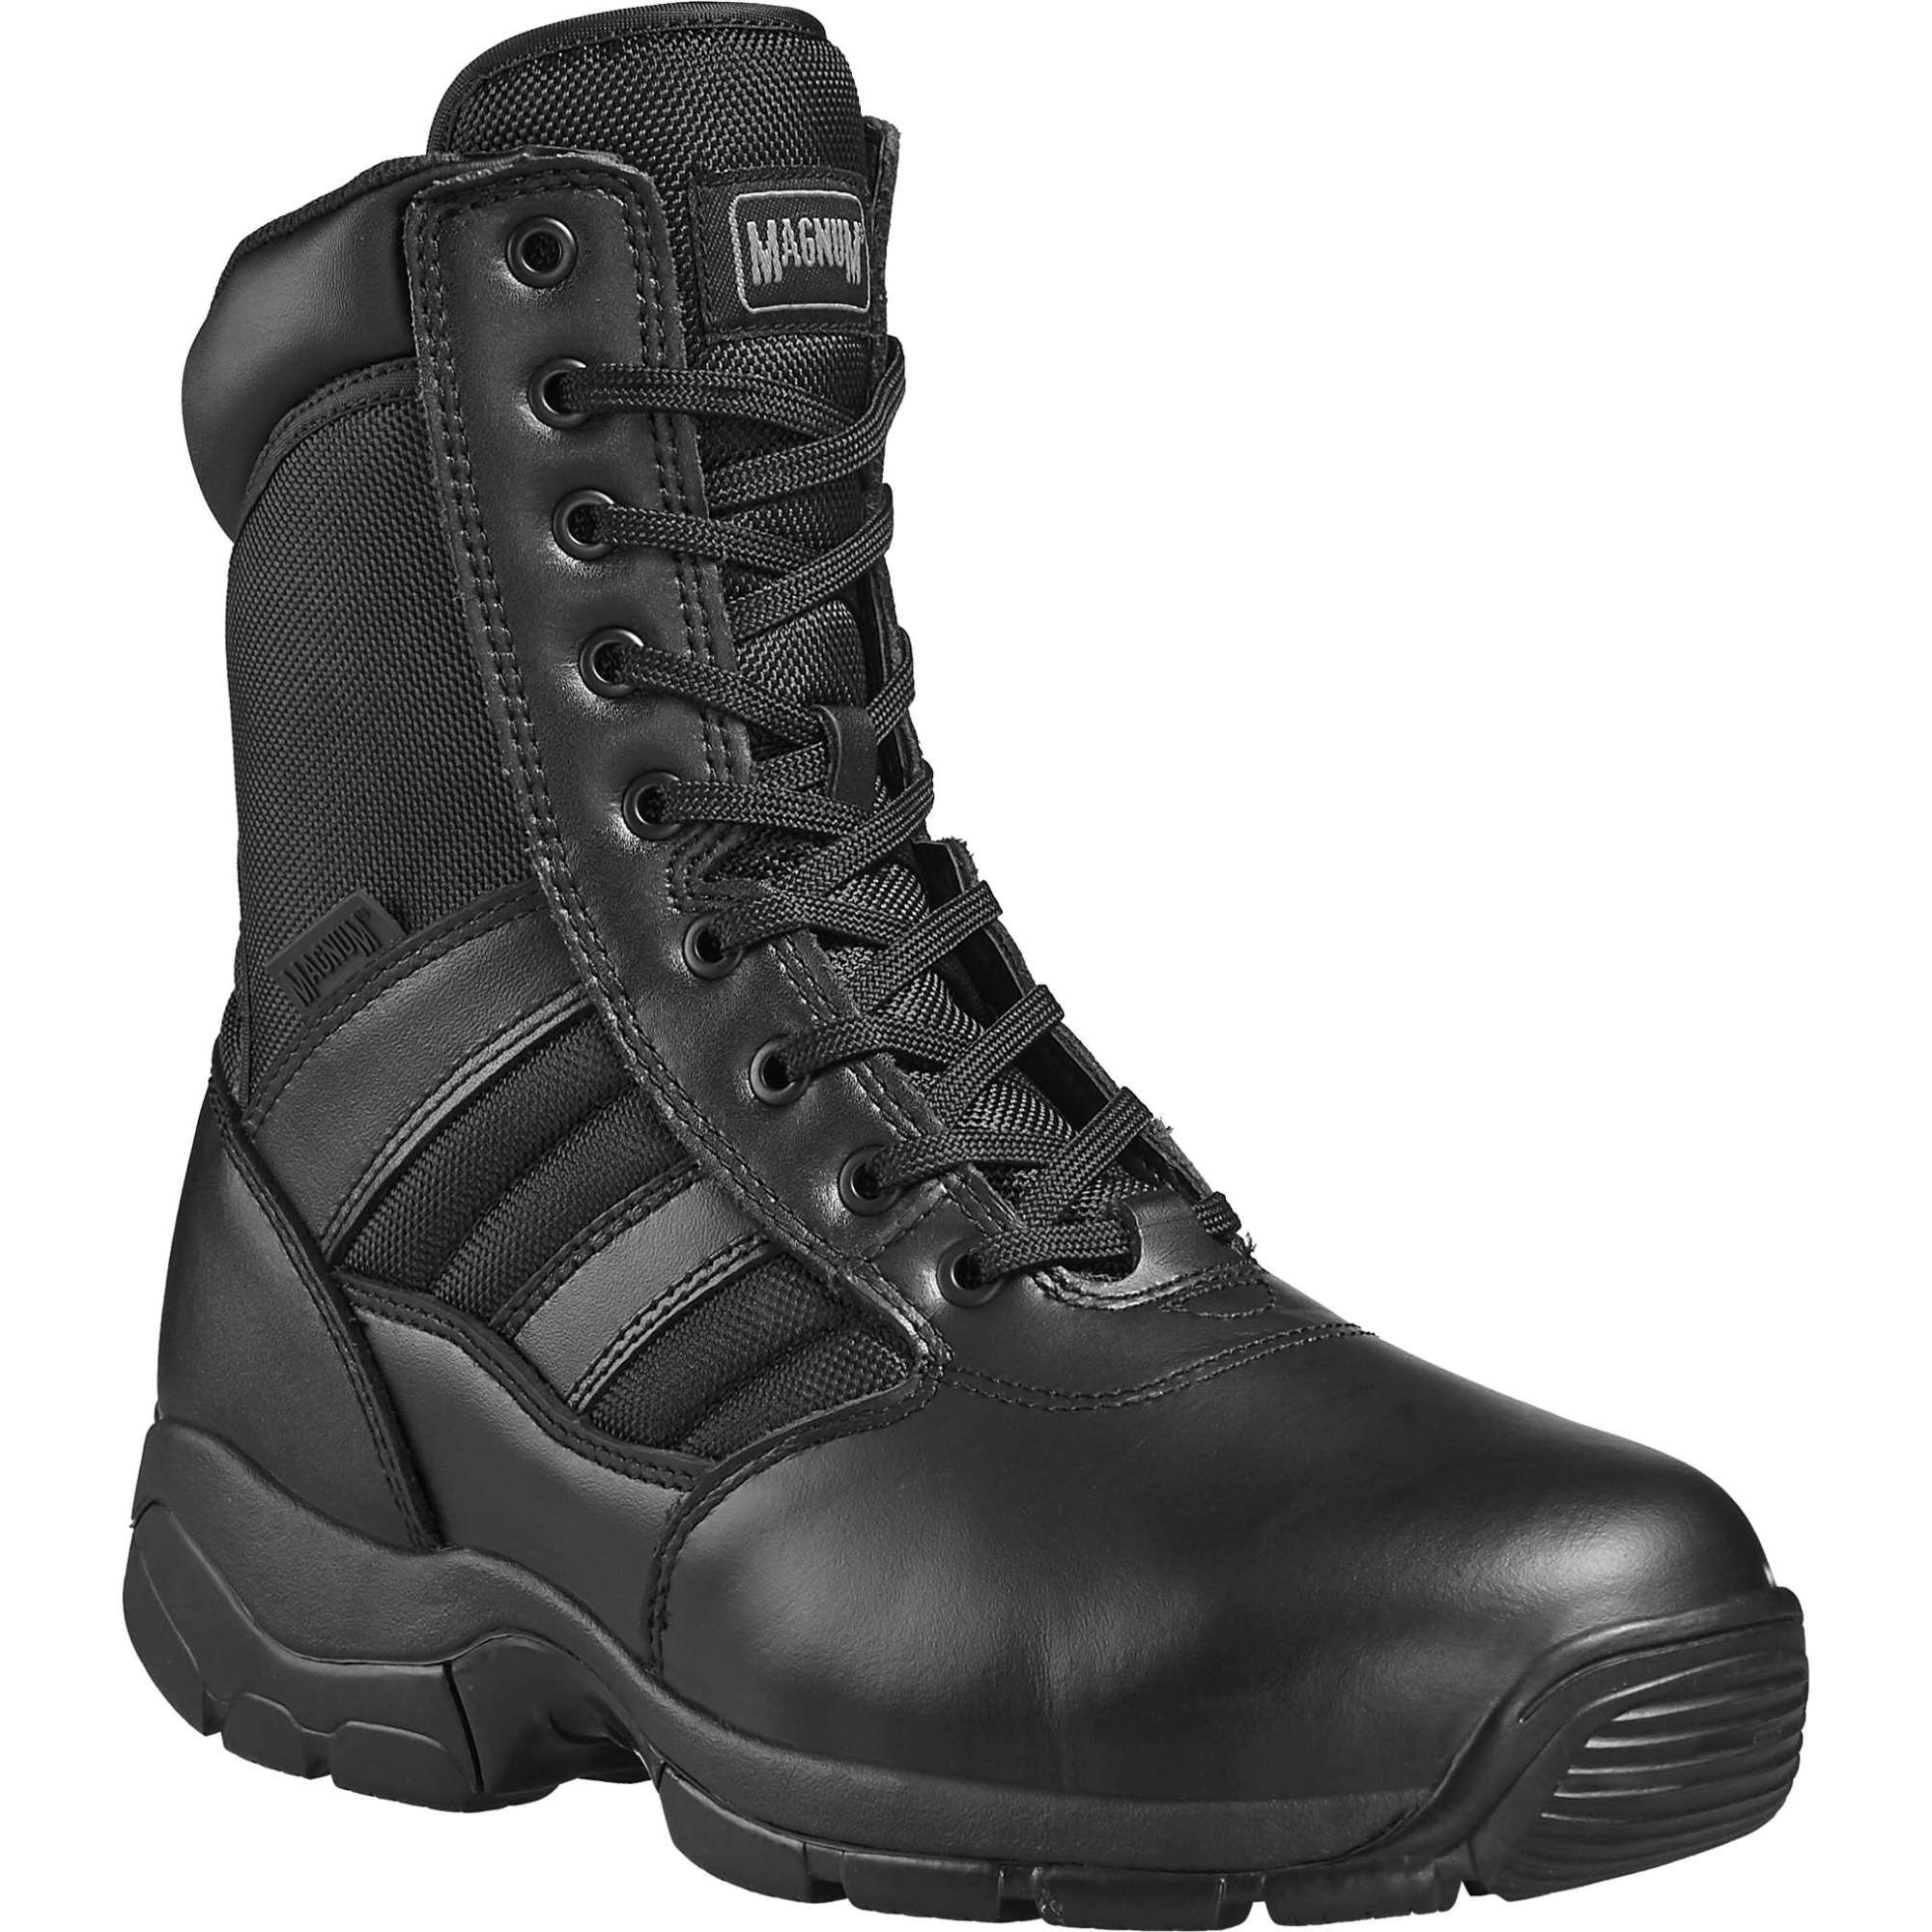 Magnum Panther 8 Steel Toe Safety Boots